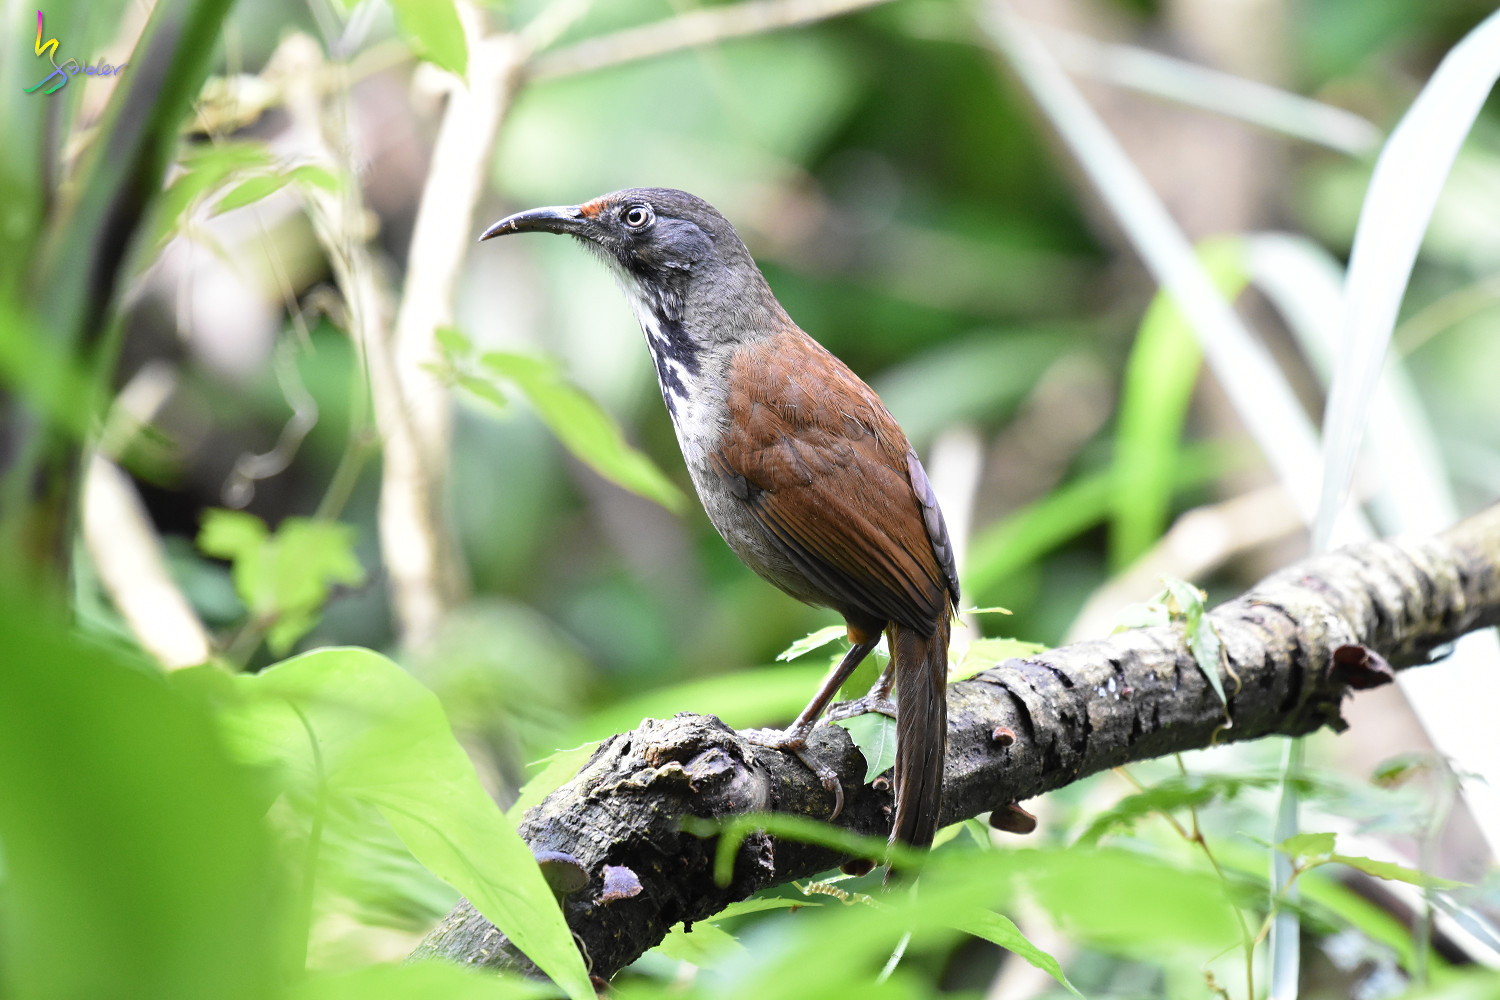 Rusty-cheeked_Scimitar-Babbler_0742